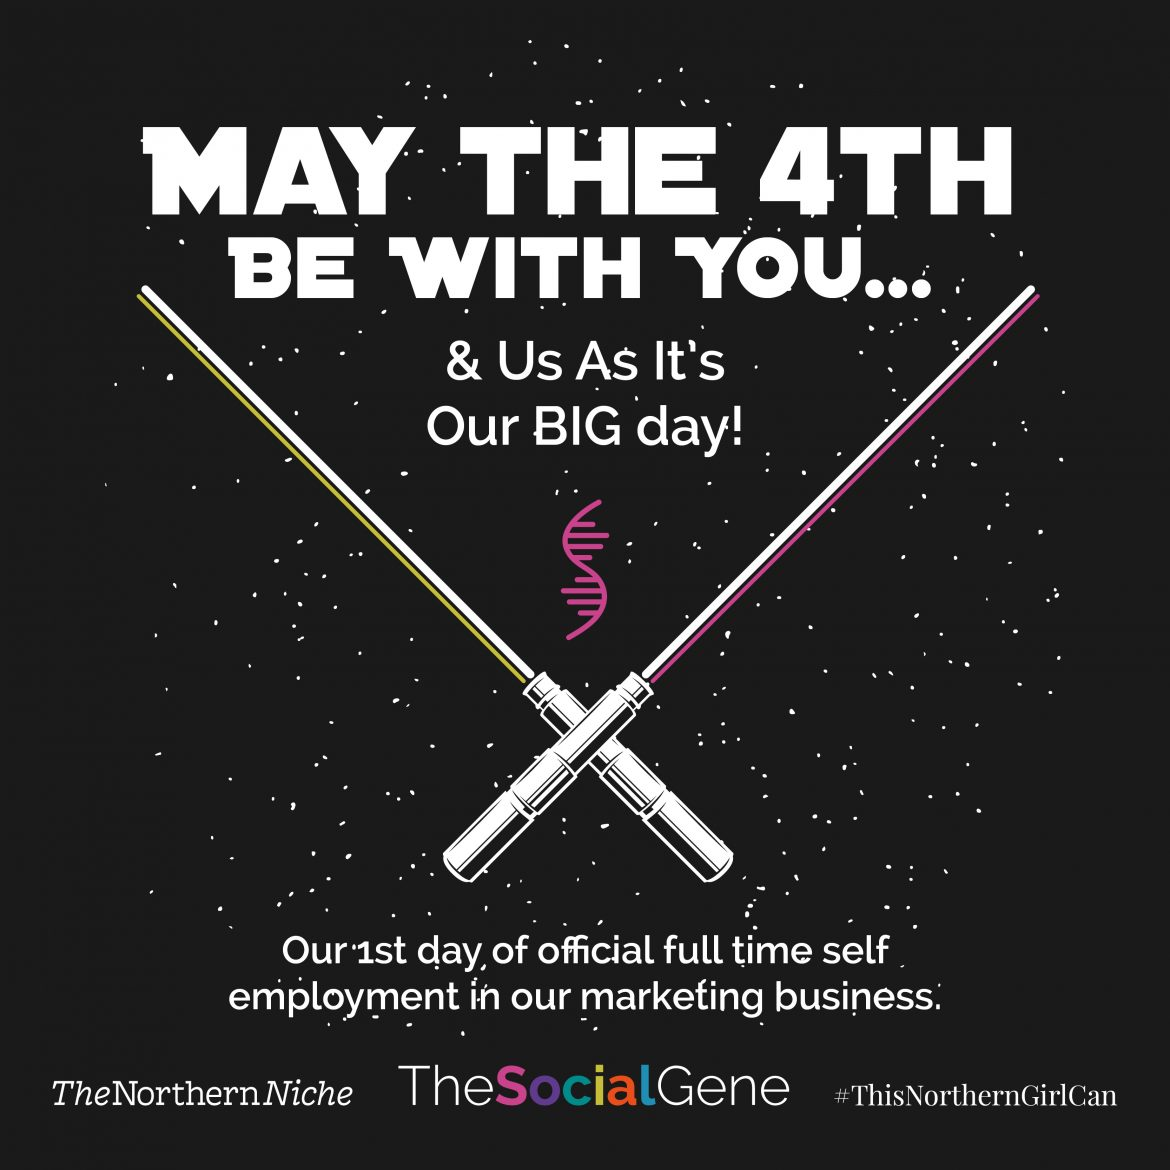 The-Social-Gene-May-The-4th-Be-With-Yoo